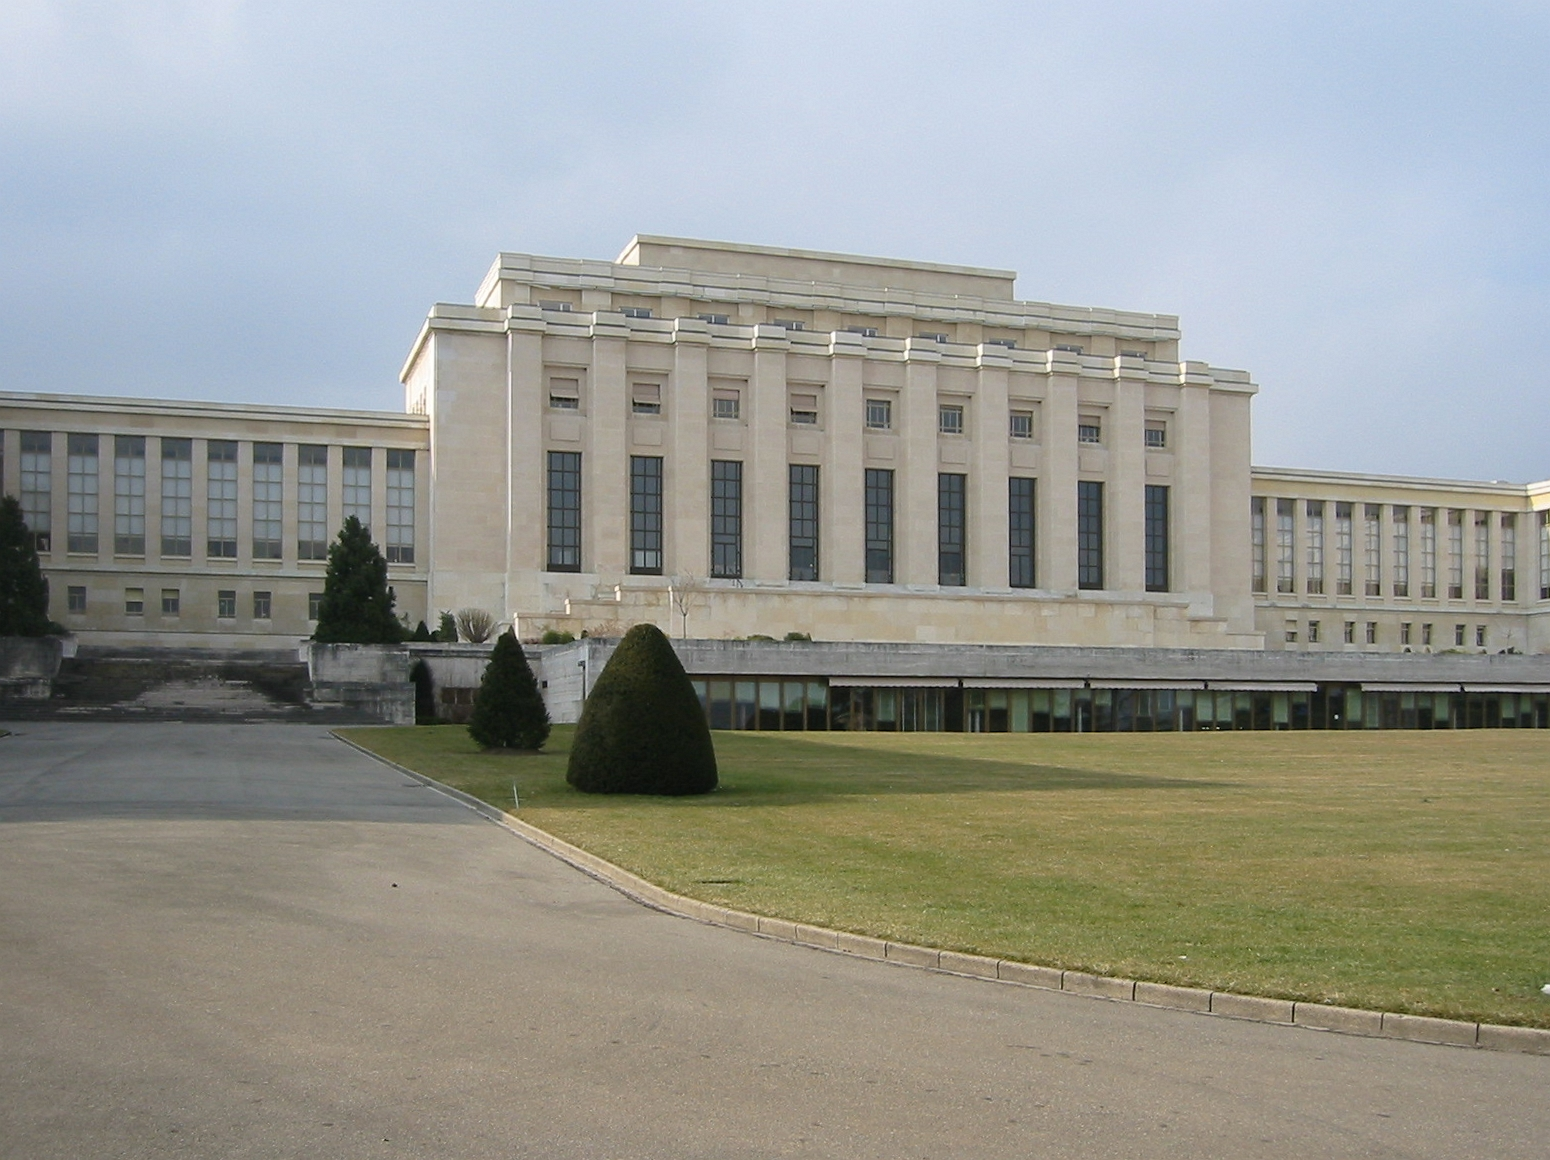 Yann Forget: The Palace of Nations